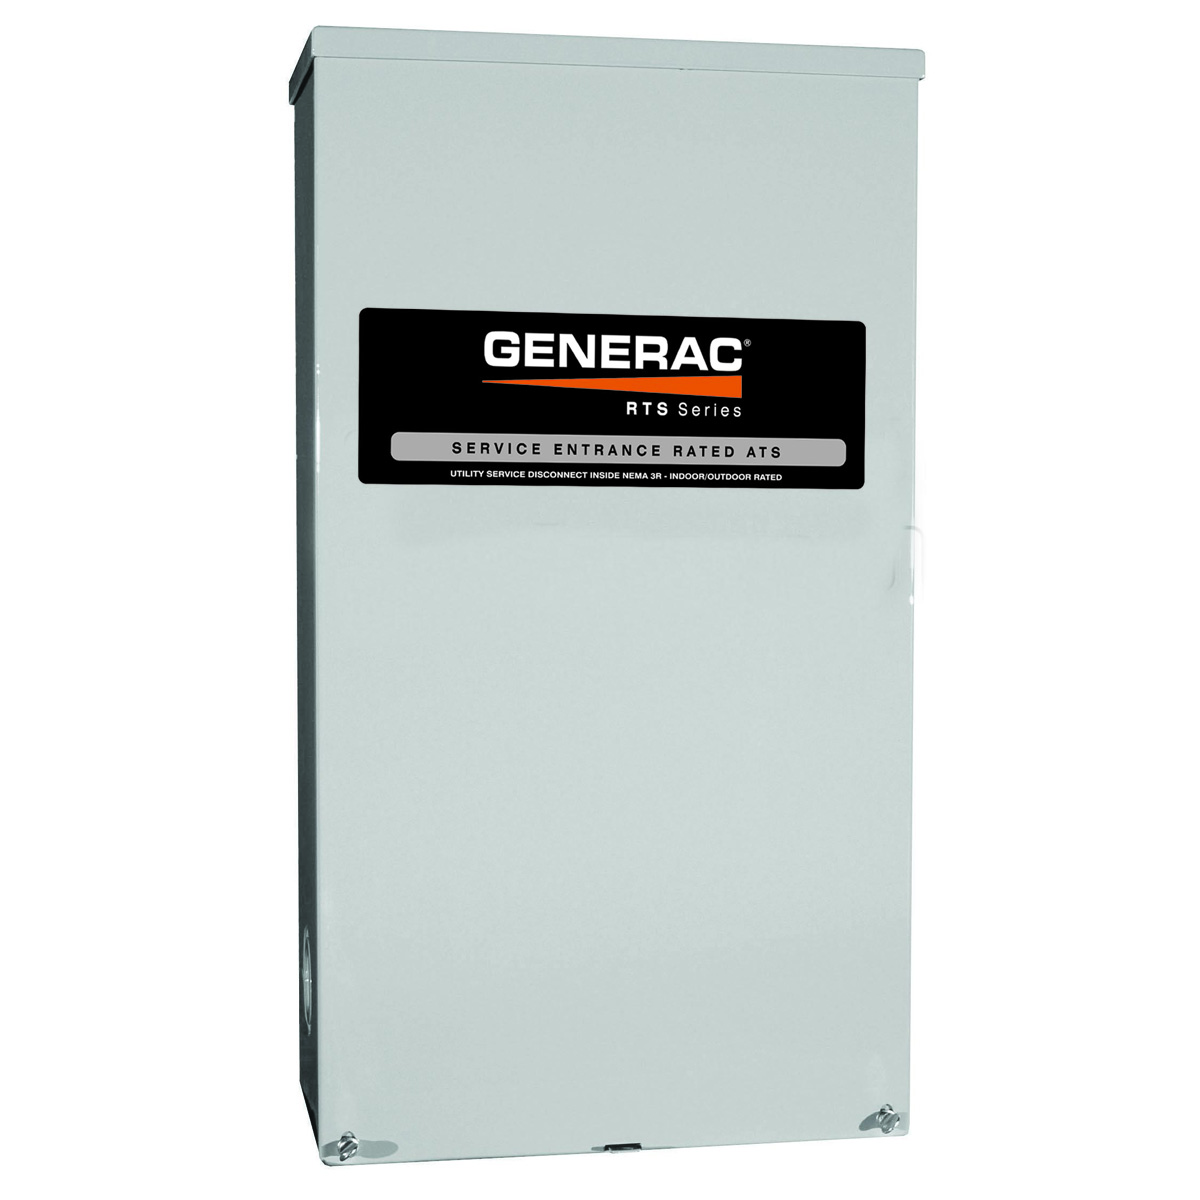 Generac automatic transfer switches facilitate the transfer or power from utility to backup during an outage.